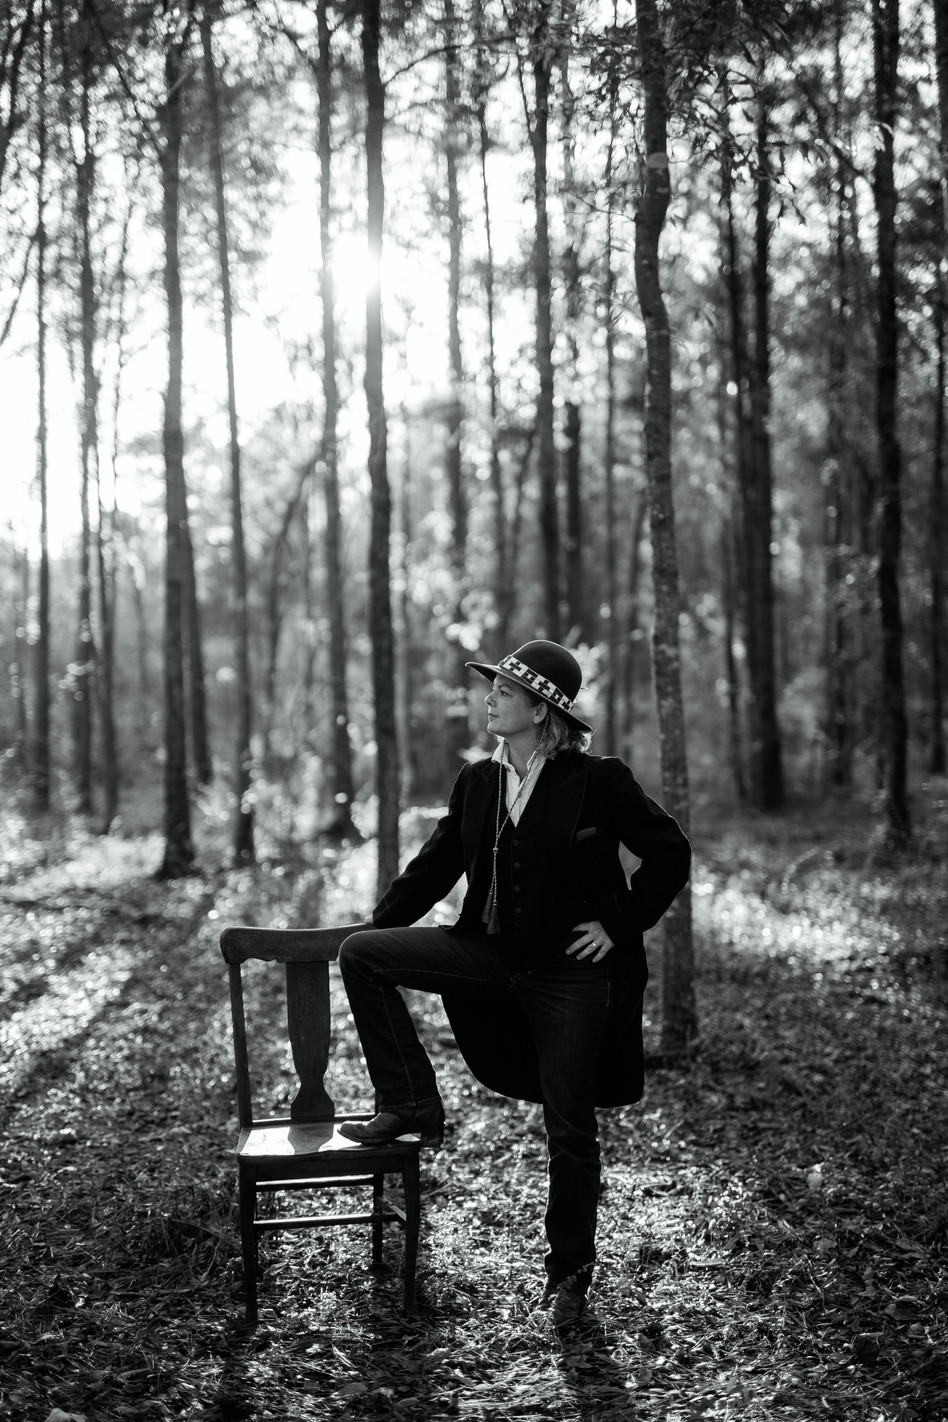 Whit in the woods of Alabama